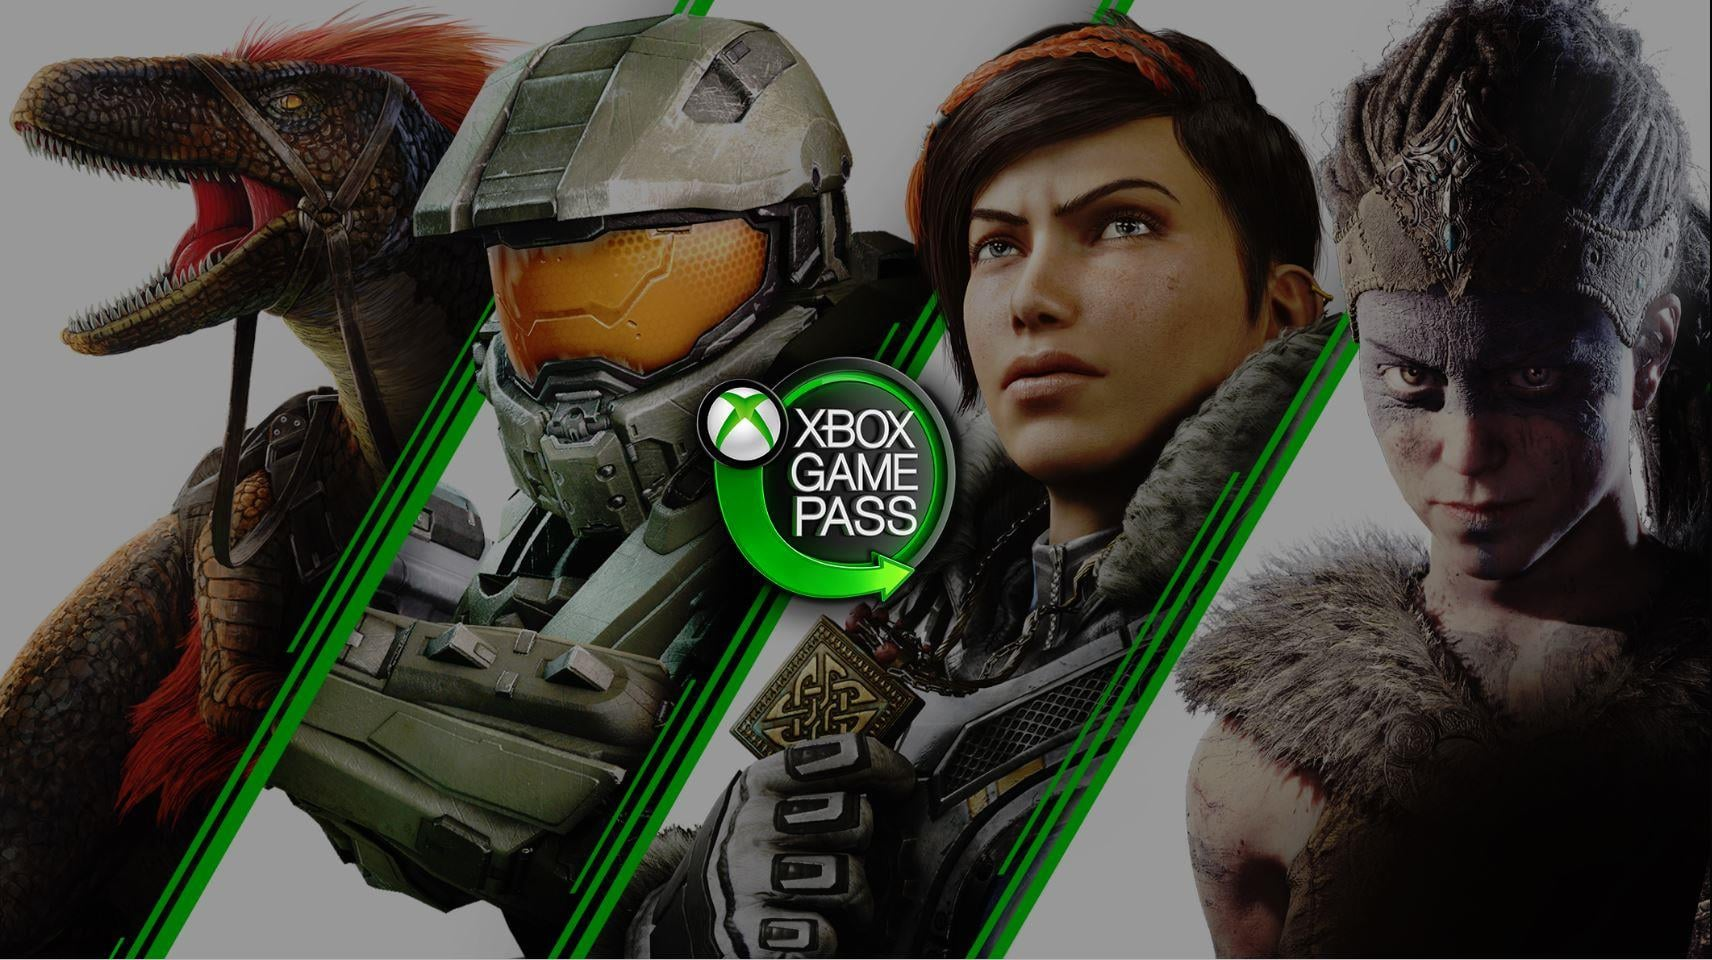 Guide: How to Make the Most of the Xbox Game Pass Ultimate